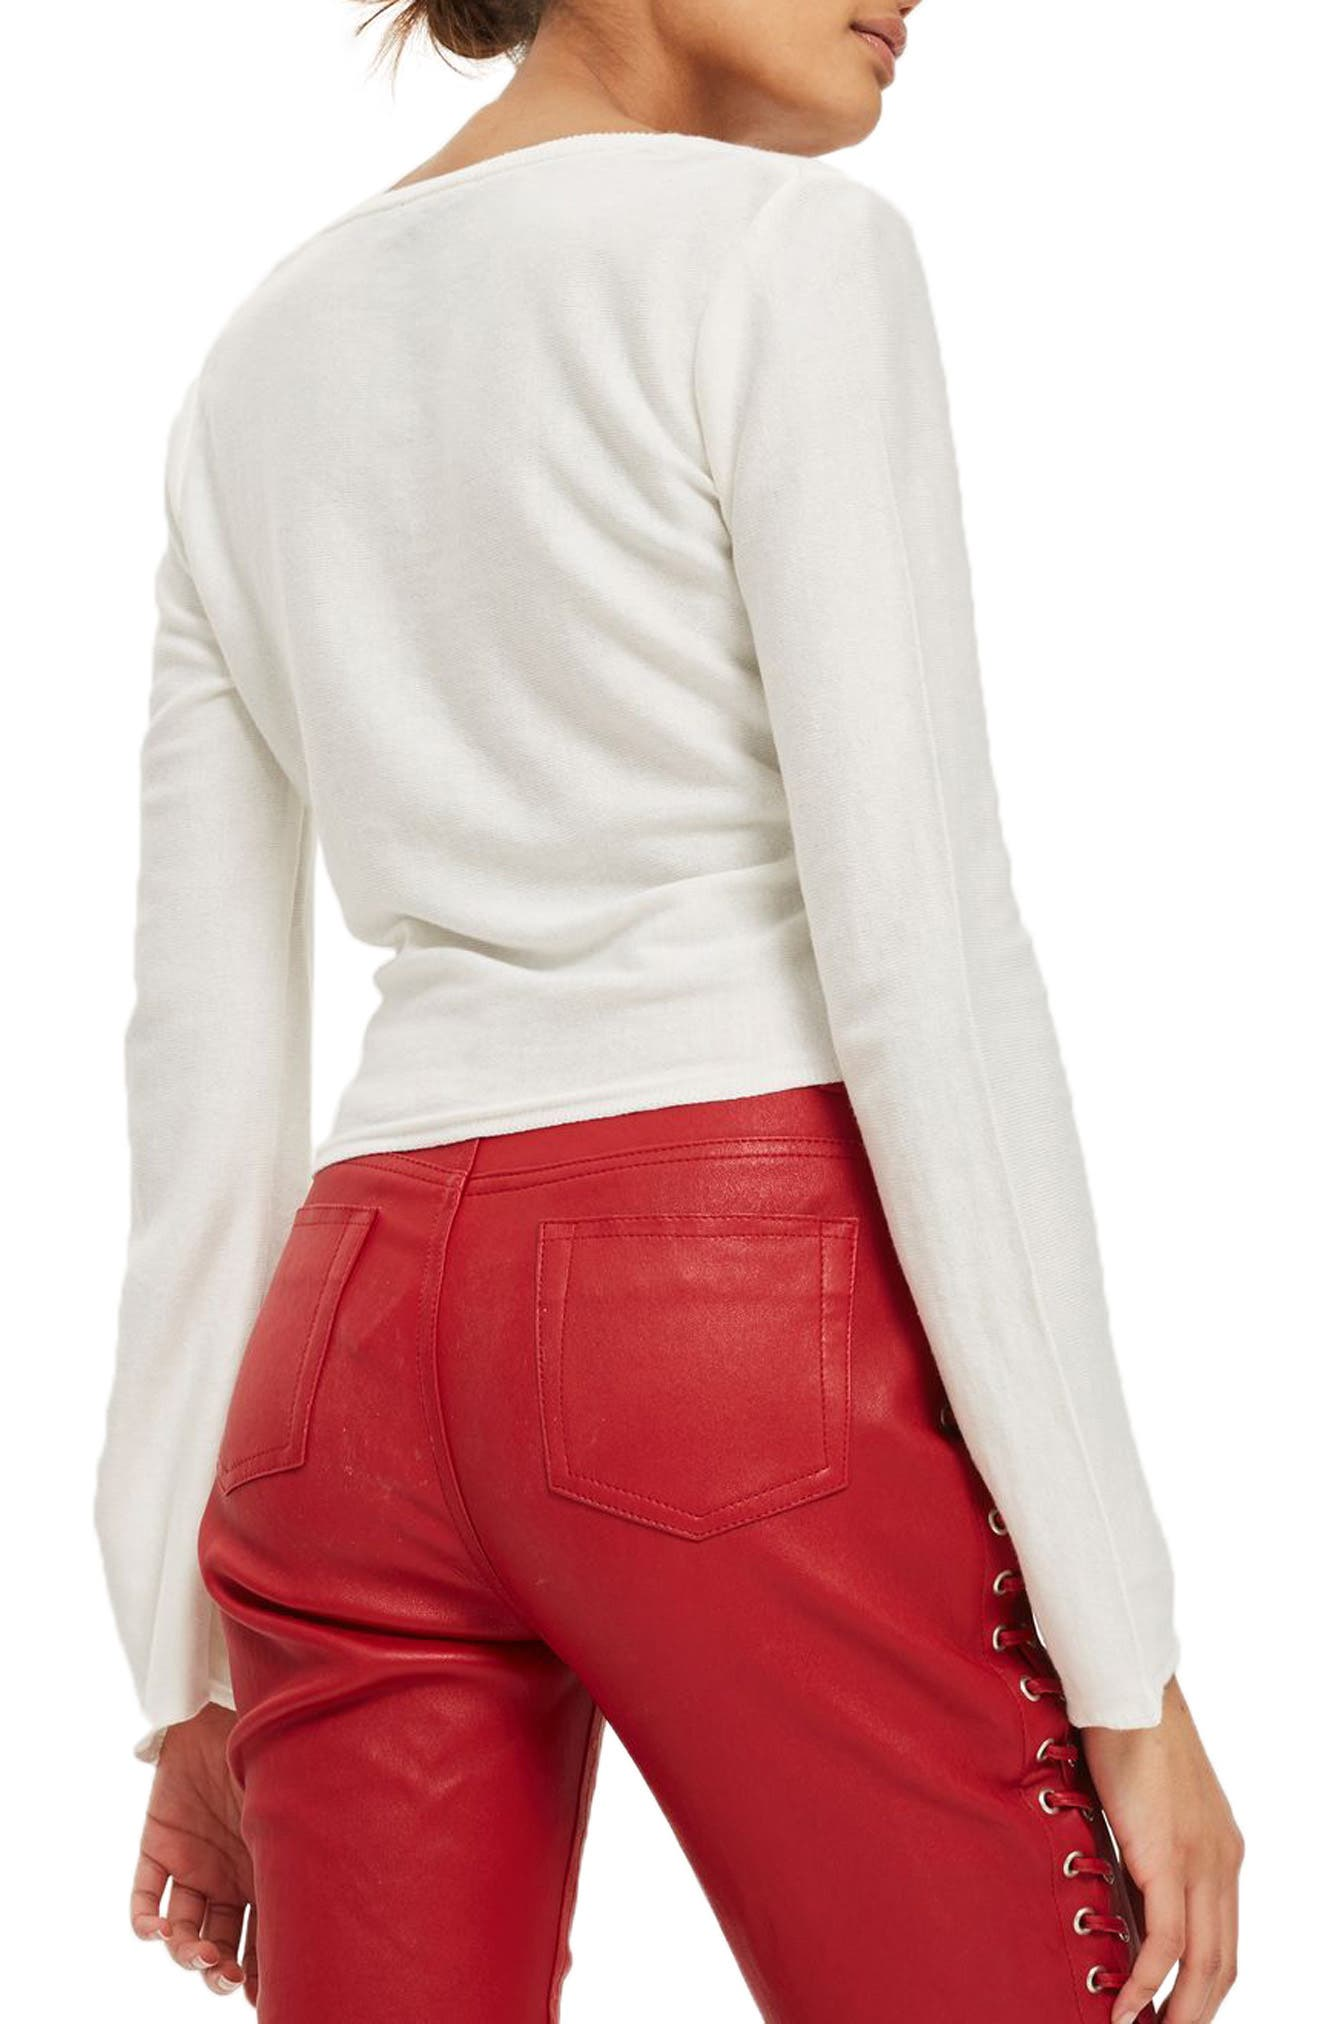 Knotted Wrap Top,                             Alternate thumbnail 2, color,                             Ivory